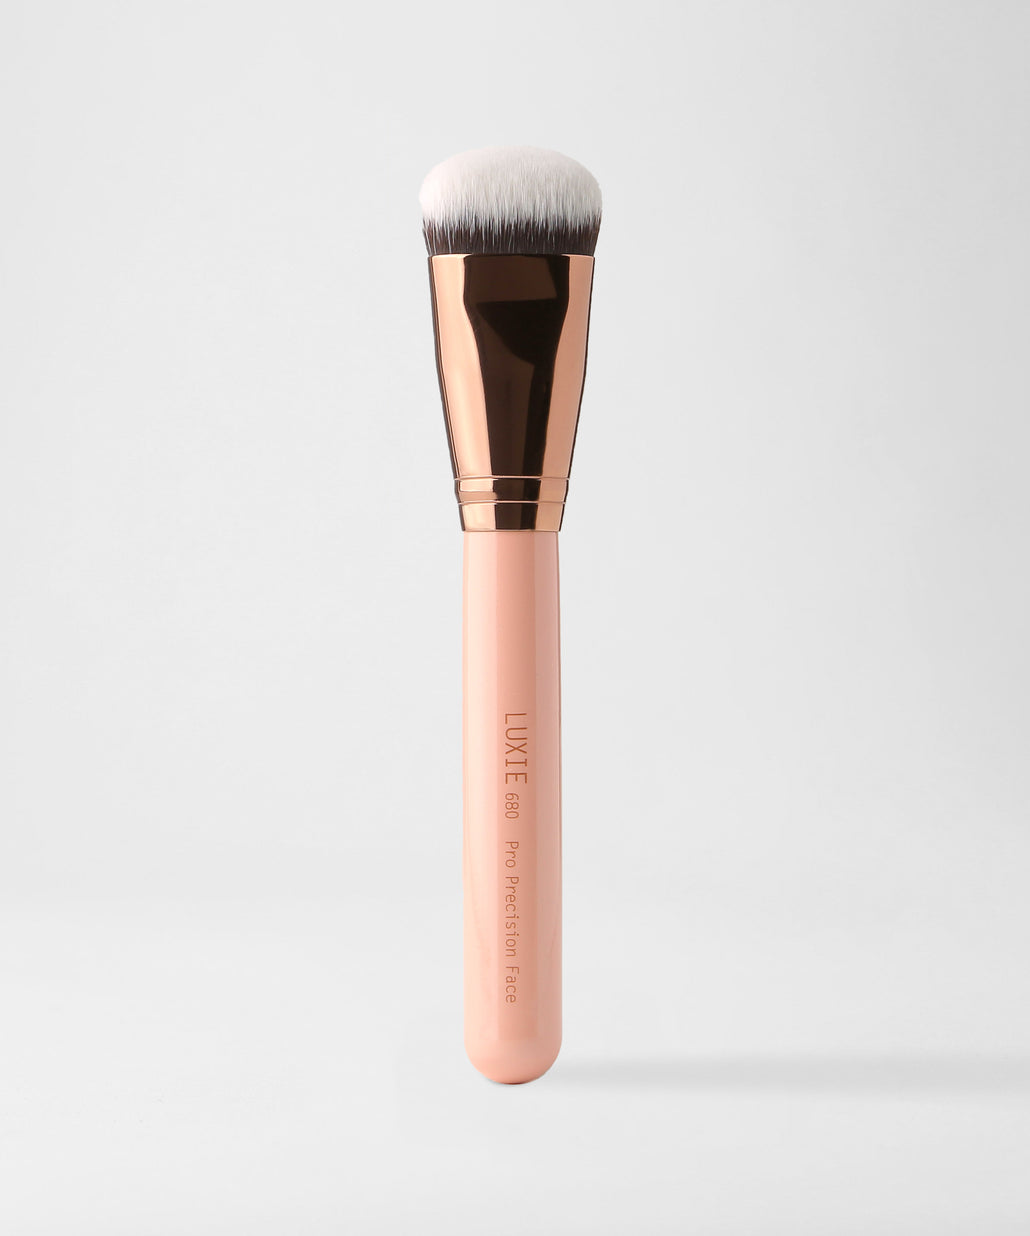 LUXIE 680 Pro Precision Face Brush - Rose Gold